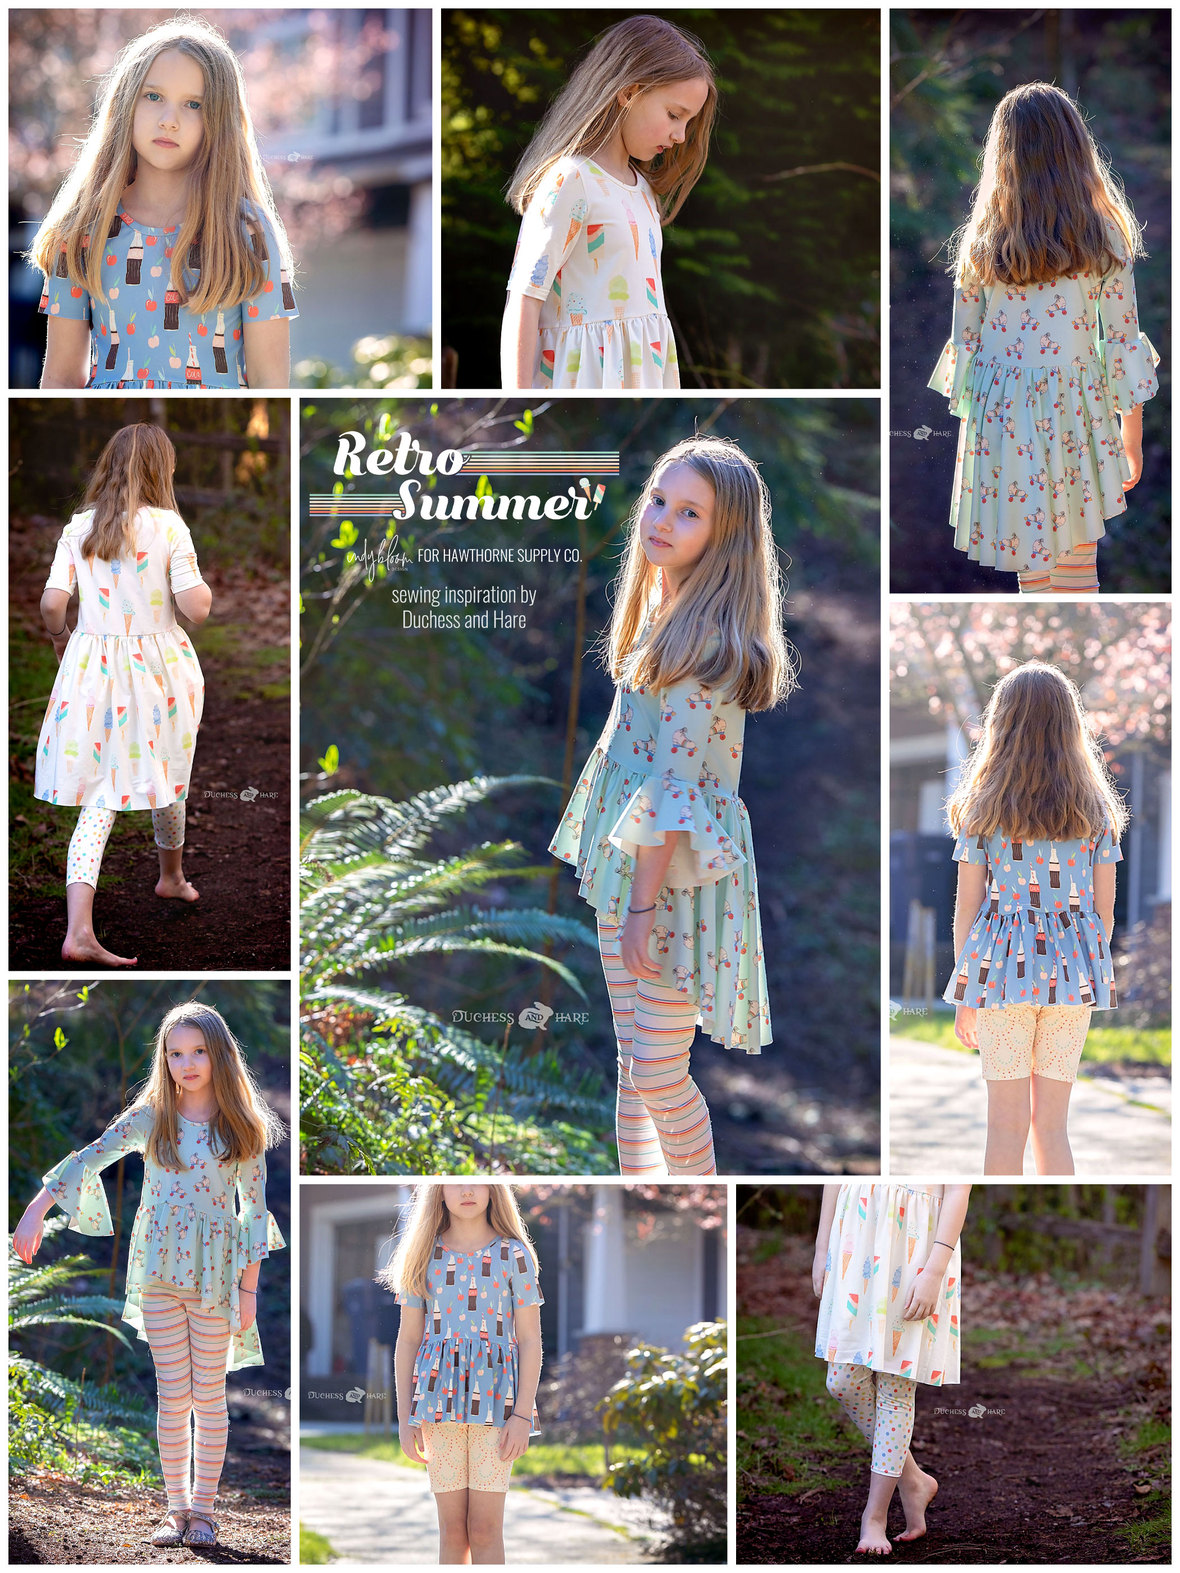 Retro-Summer-from-Indy-Bloom-at-Hawthorne-Supply-Patterns-by-Dutchess-and-Hare